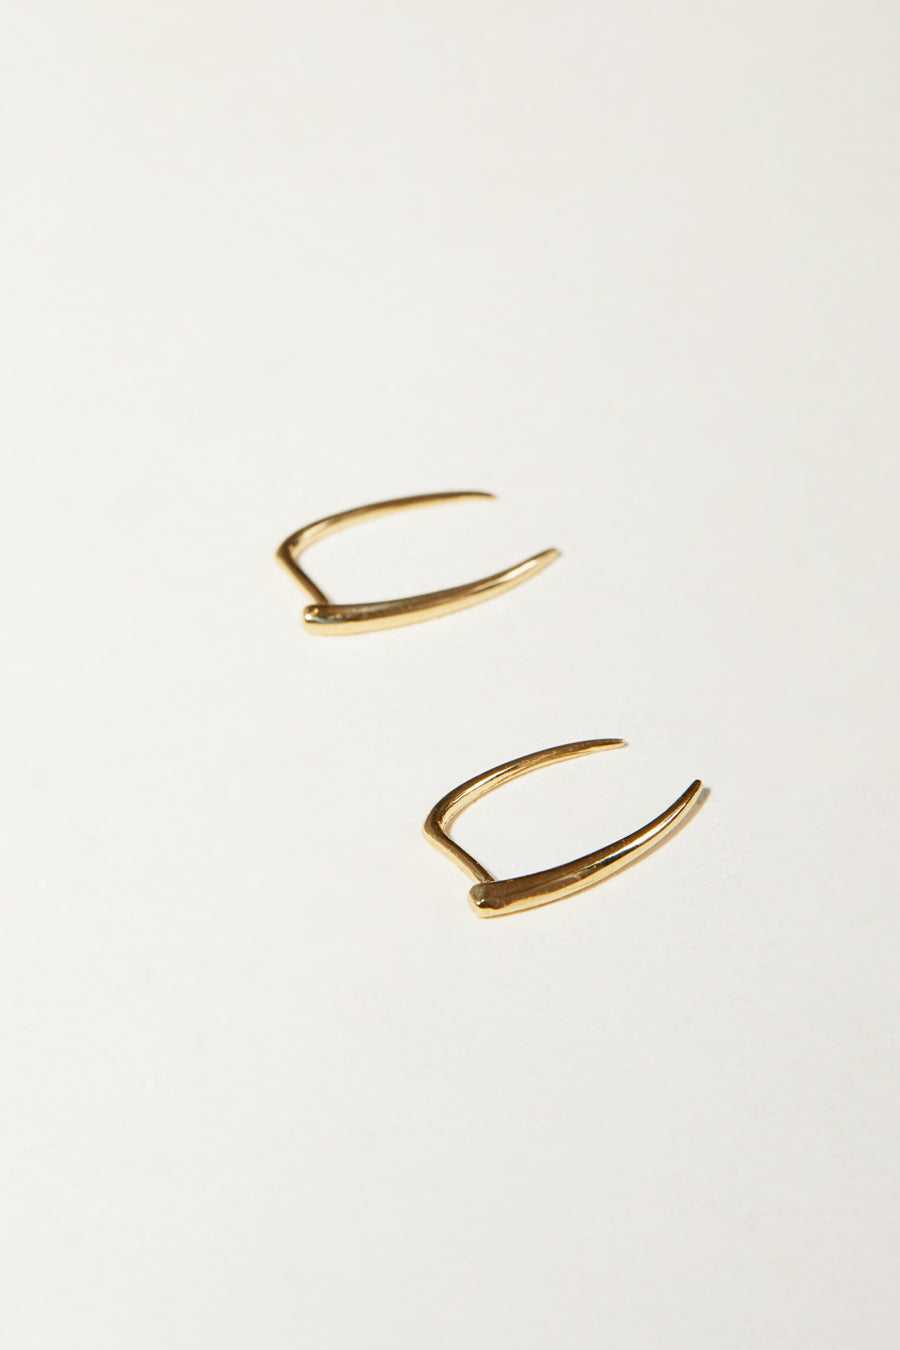 Gabriela Artigas Infinite Tusk Earrings in 14K Yellow Gold